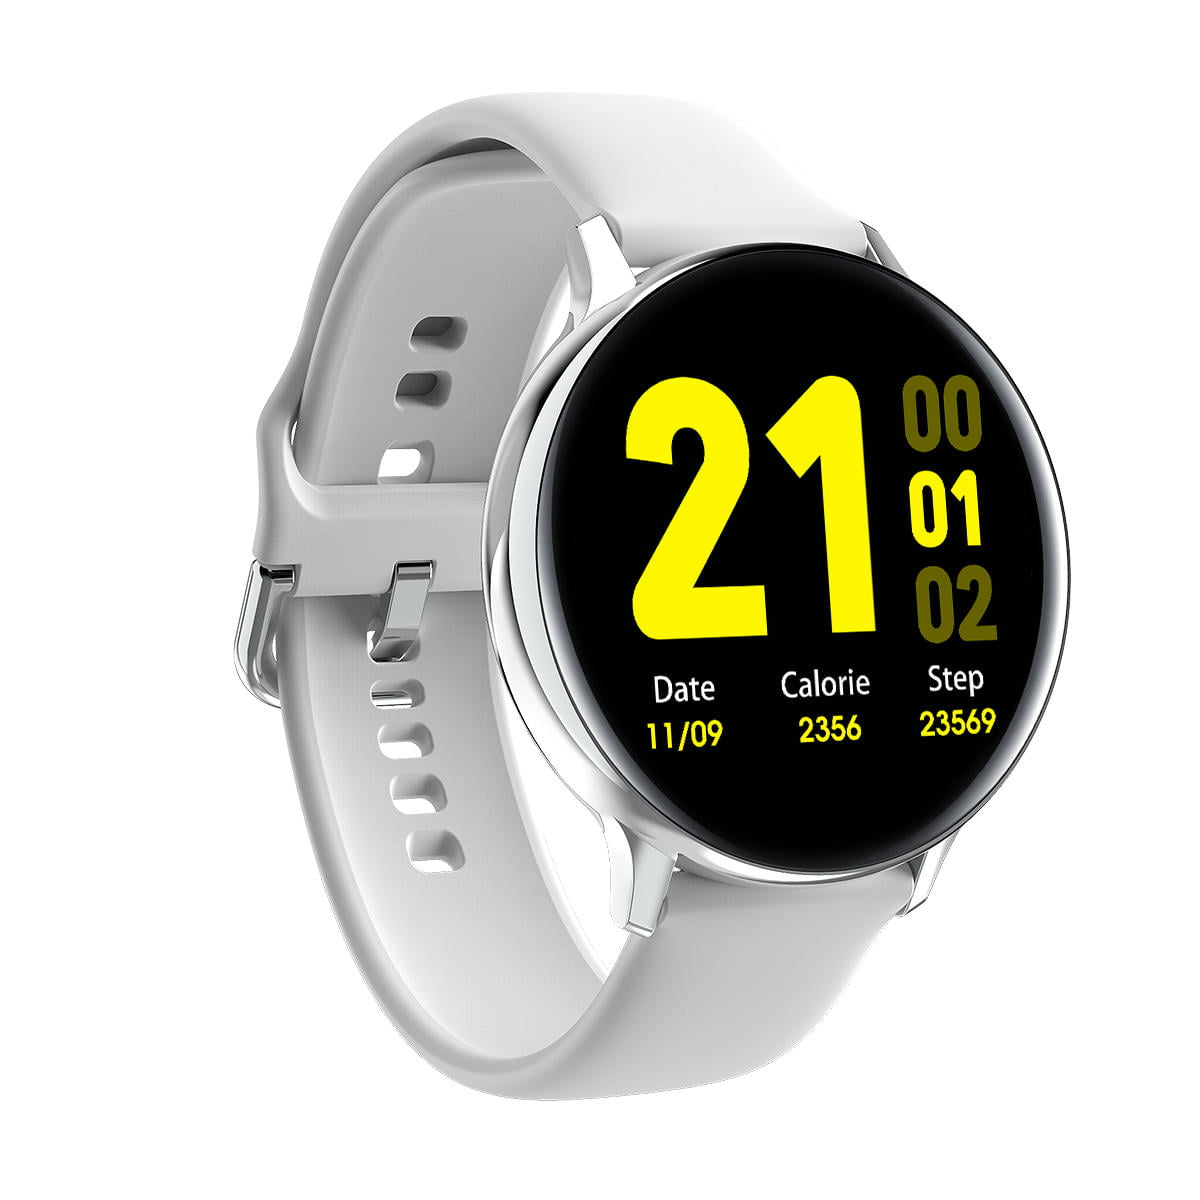 S20 ECG monitor smart watch heart rate monitor blood pressure (1)